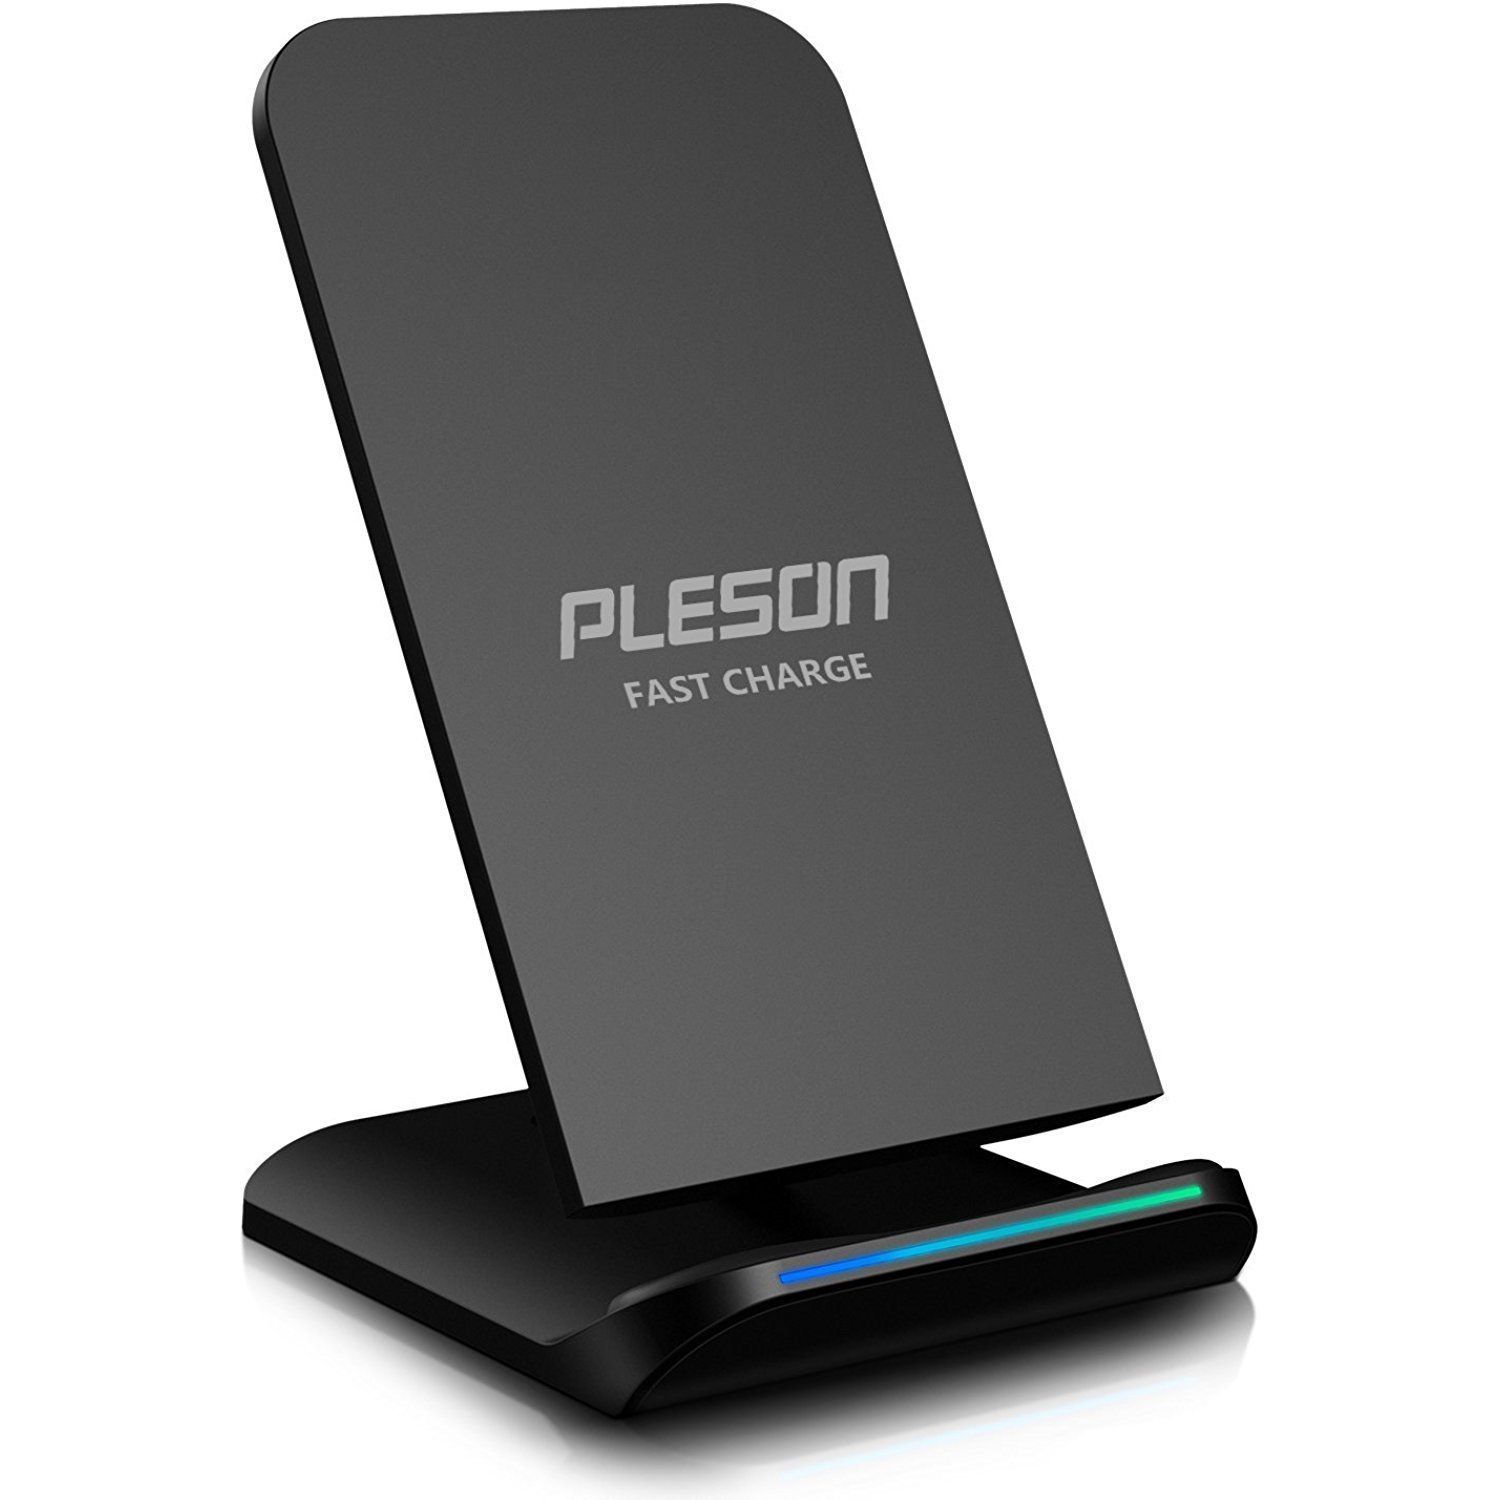 PLESON Fast Wireless Charger Cell QI Fast Wireless Charging Pad Stand for Samsung Galaxy Note 8 S8 Plus S8 S8 S7 S7 Edge Note 5 and Standard Charge for